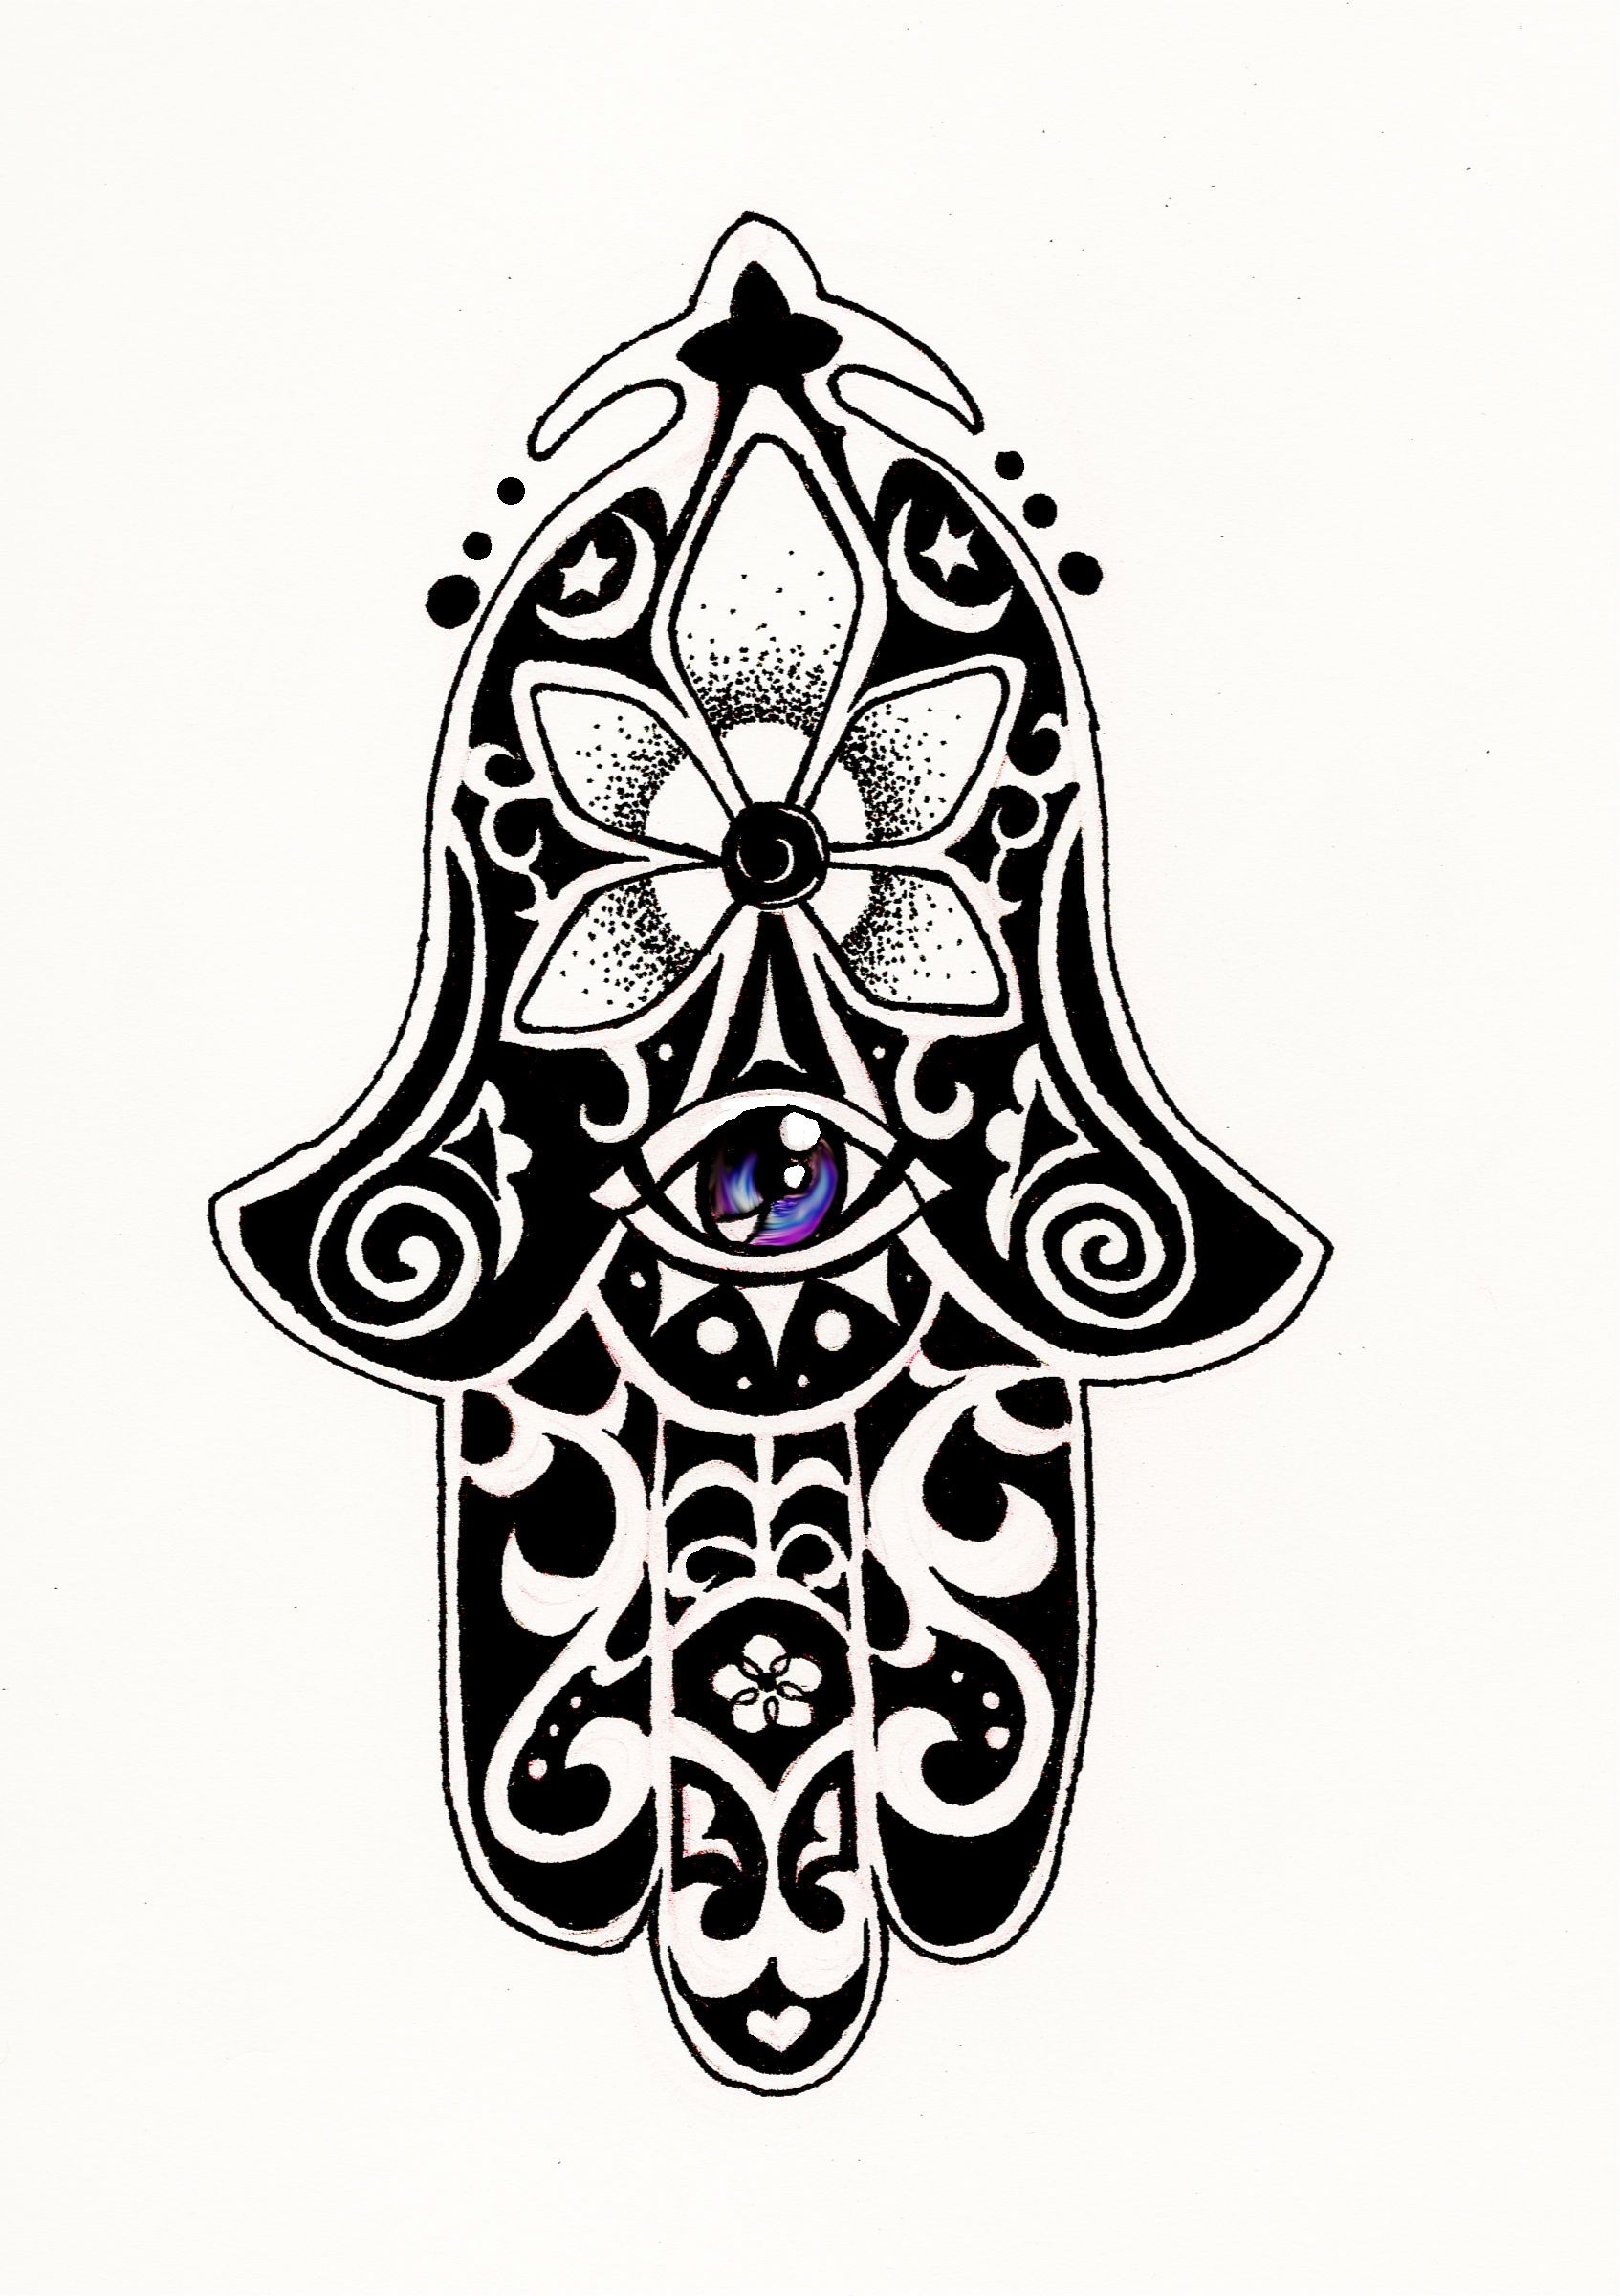 Hamsa Tattoo Images | Ink and placement | Pinterest ...